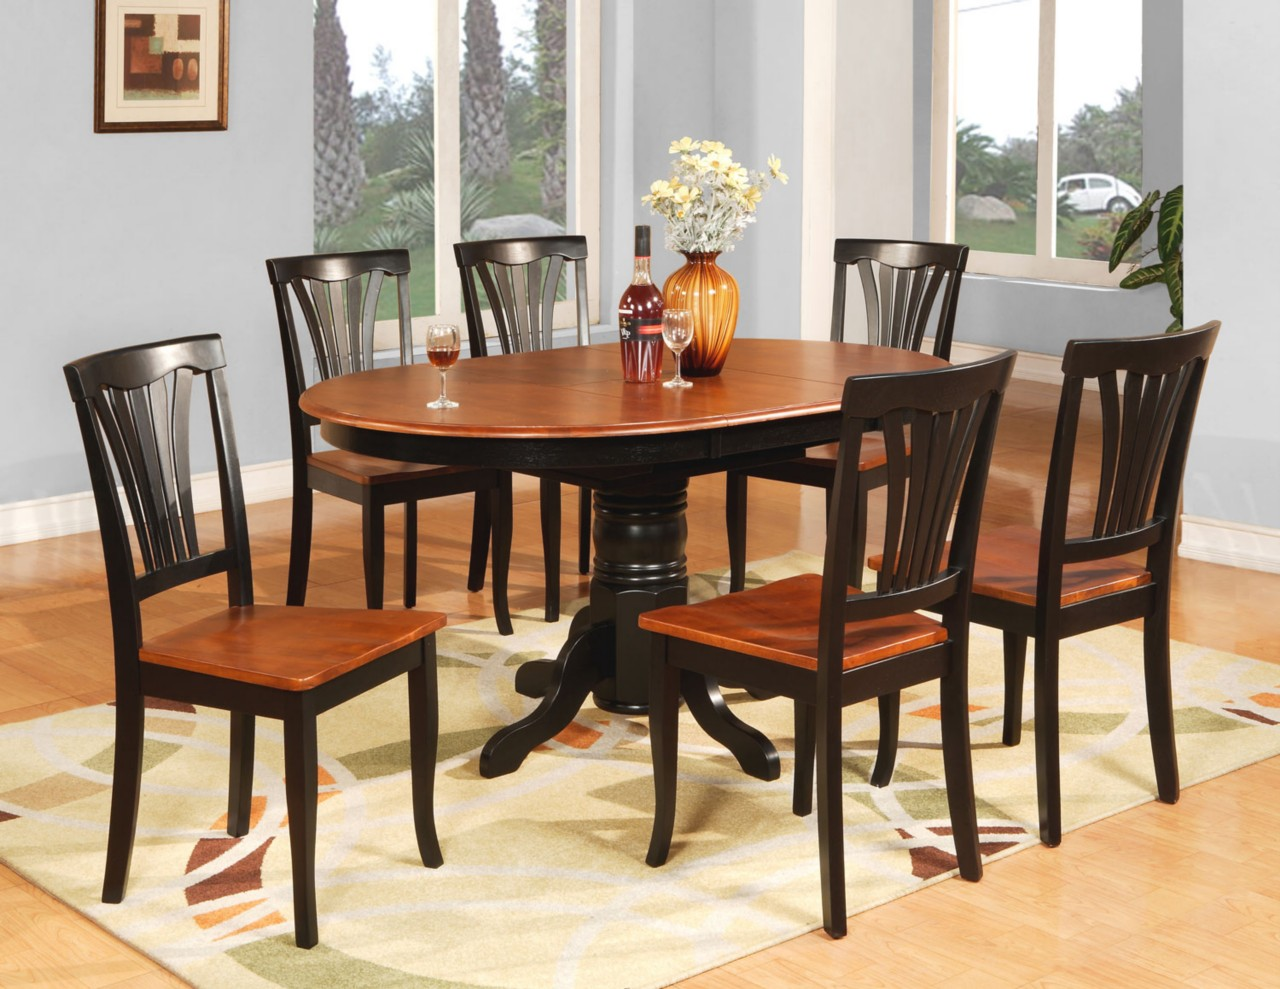 7 pc oval dinette kitchen dining room table 6 chairs ebay ForKitchen And Dining Room Chairs